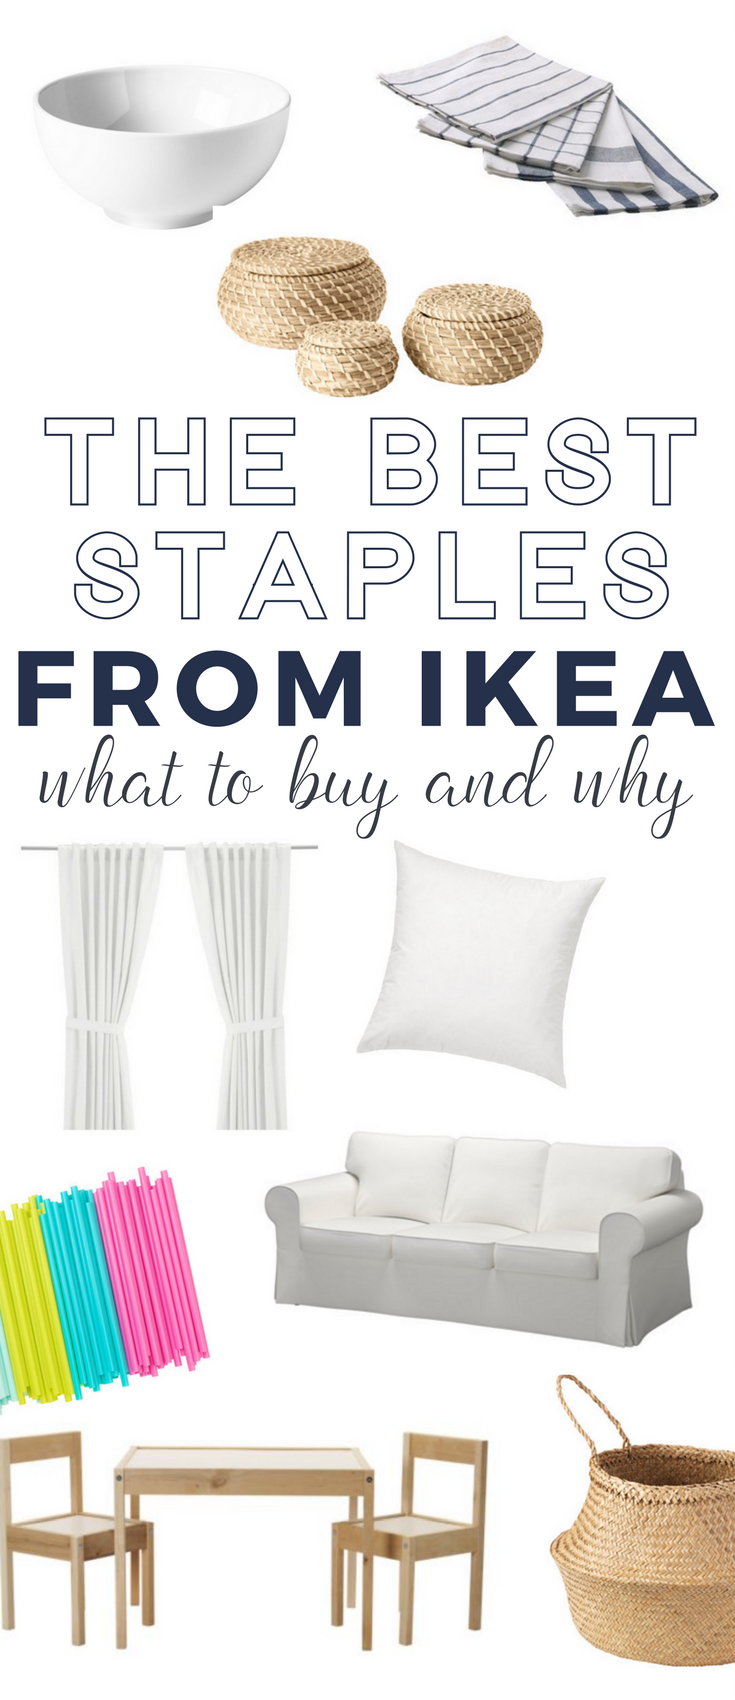 What to buy at ikea the best homes staples from ikea helpful